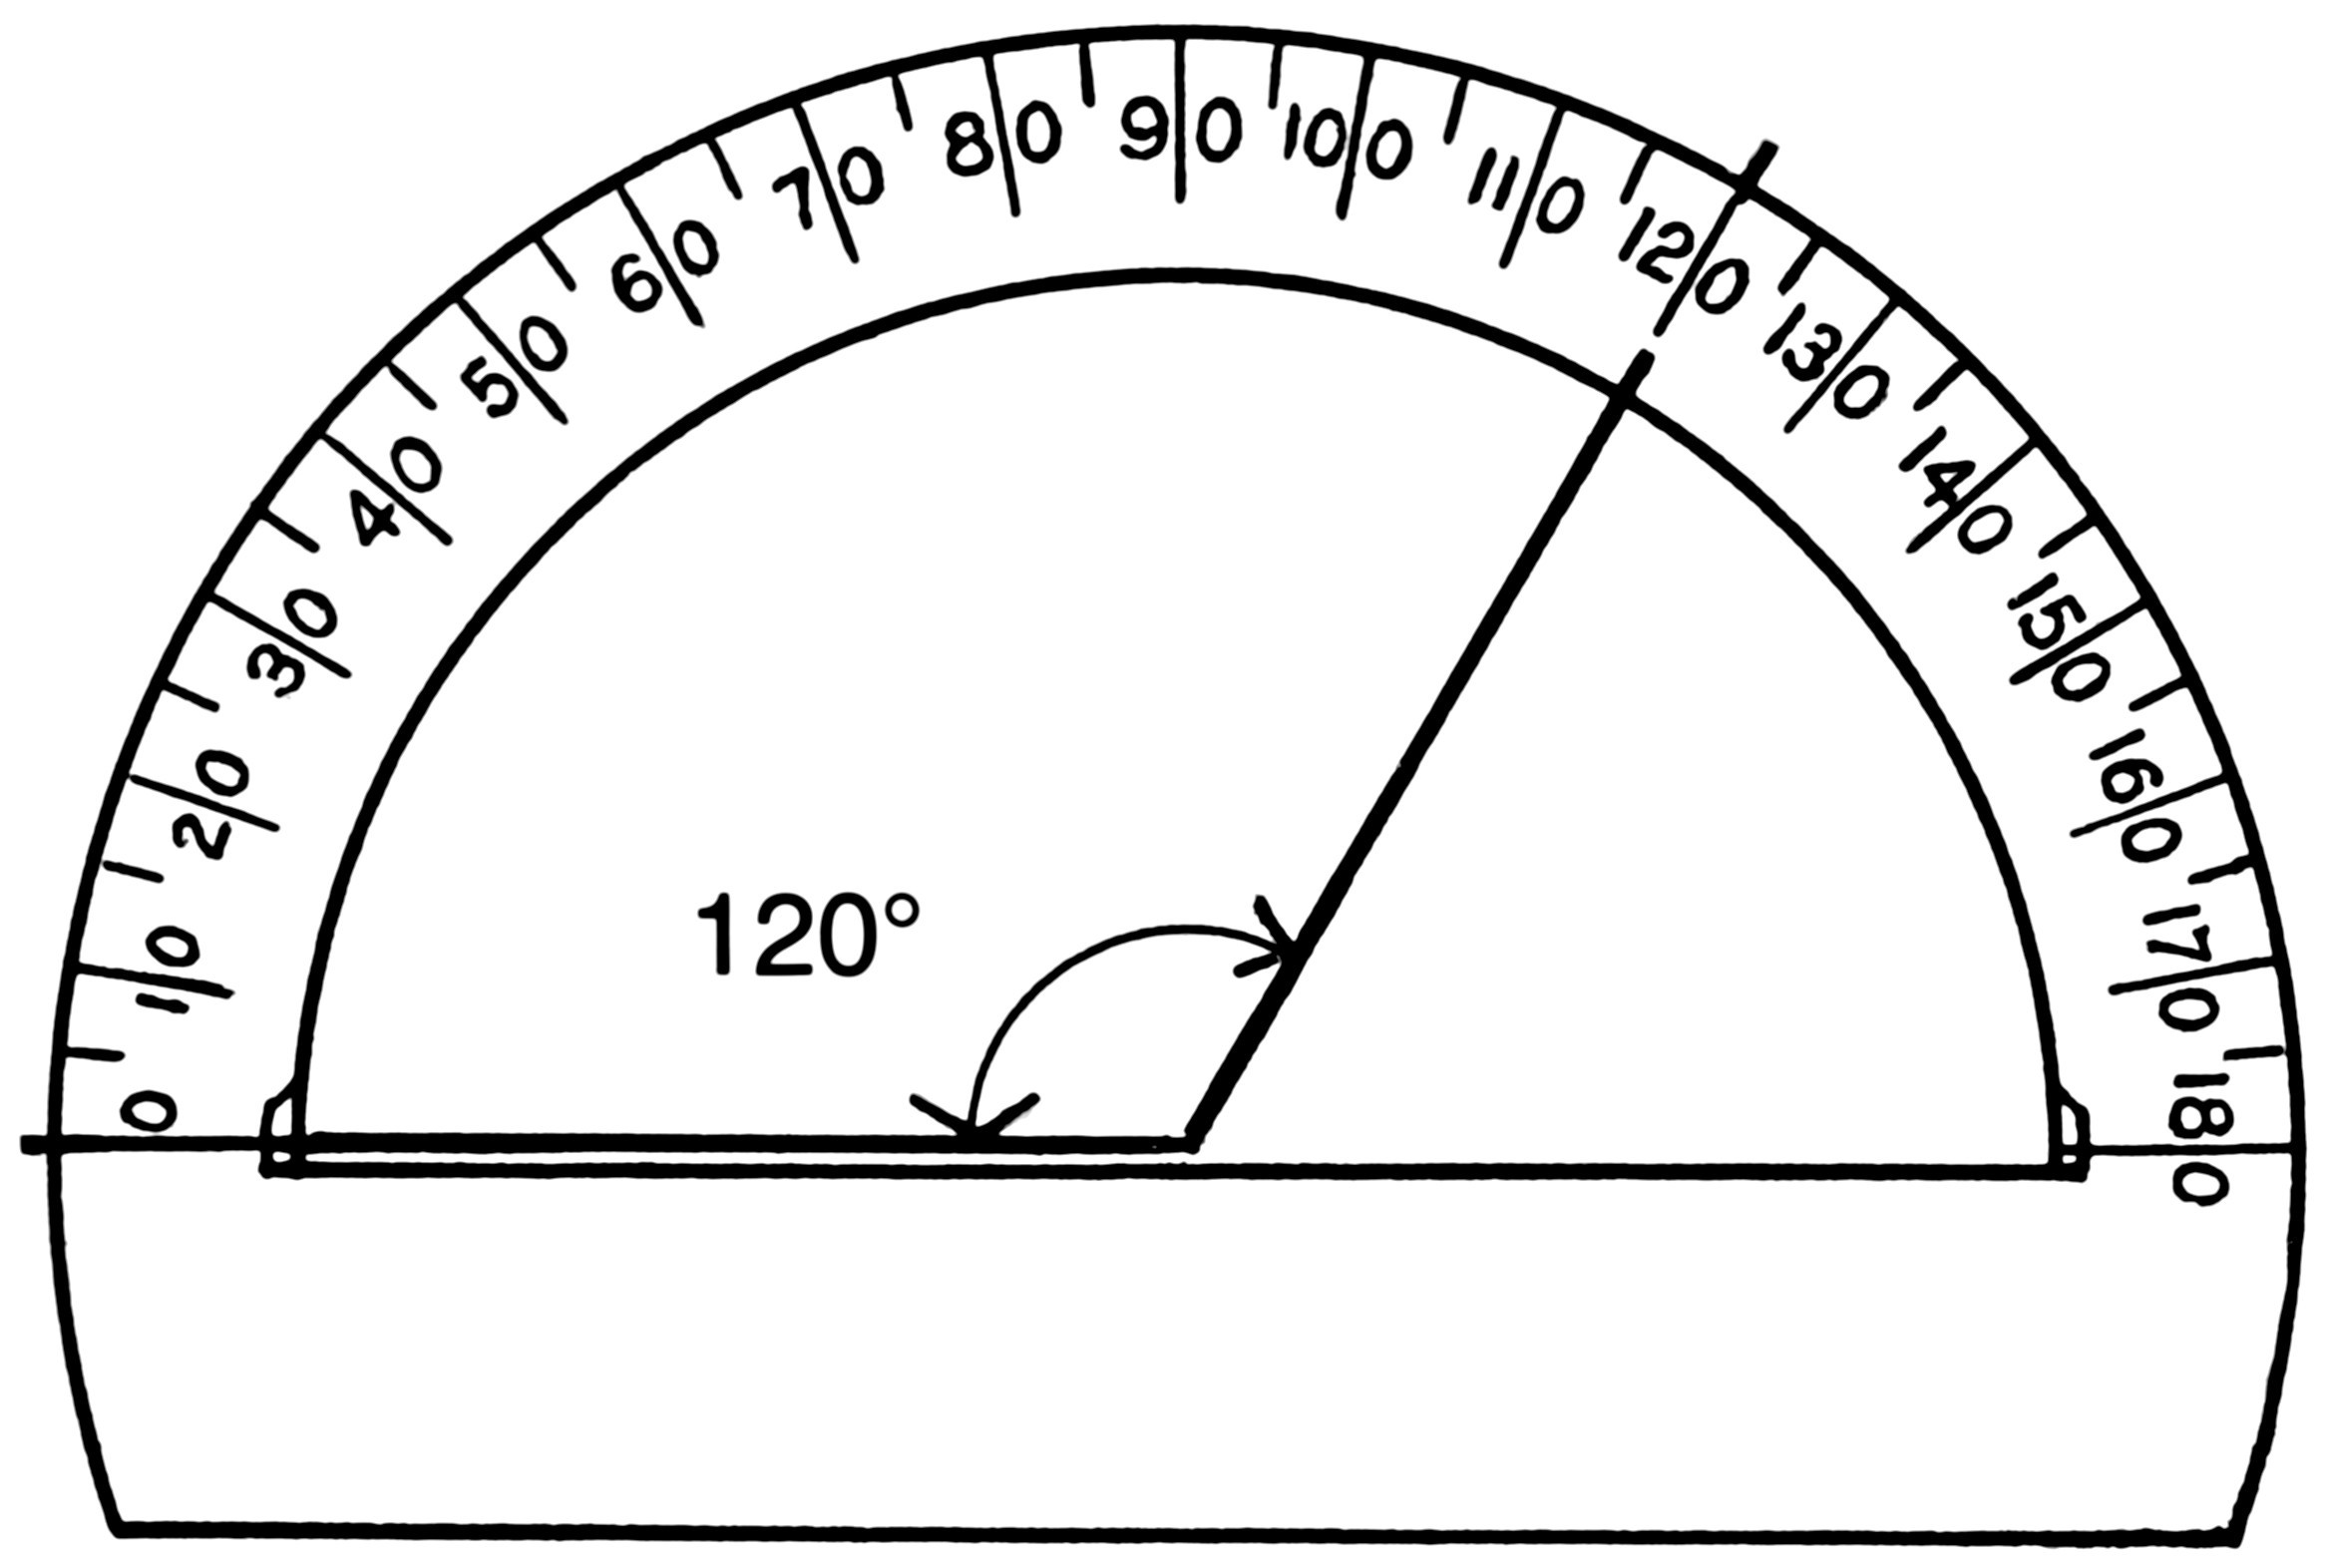 Circular Protractor Template Luxury Horizontal Line Drawing at Getdrawings